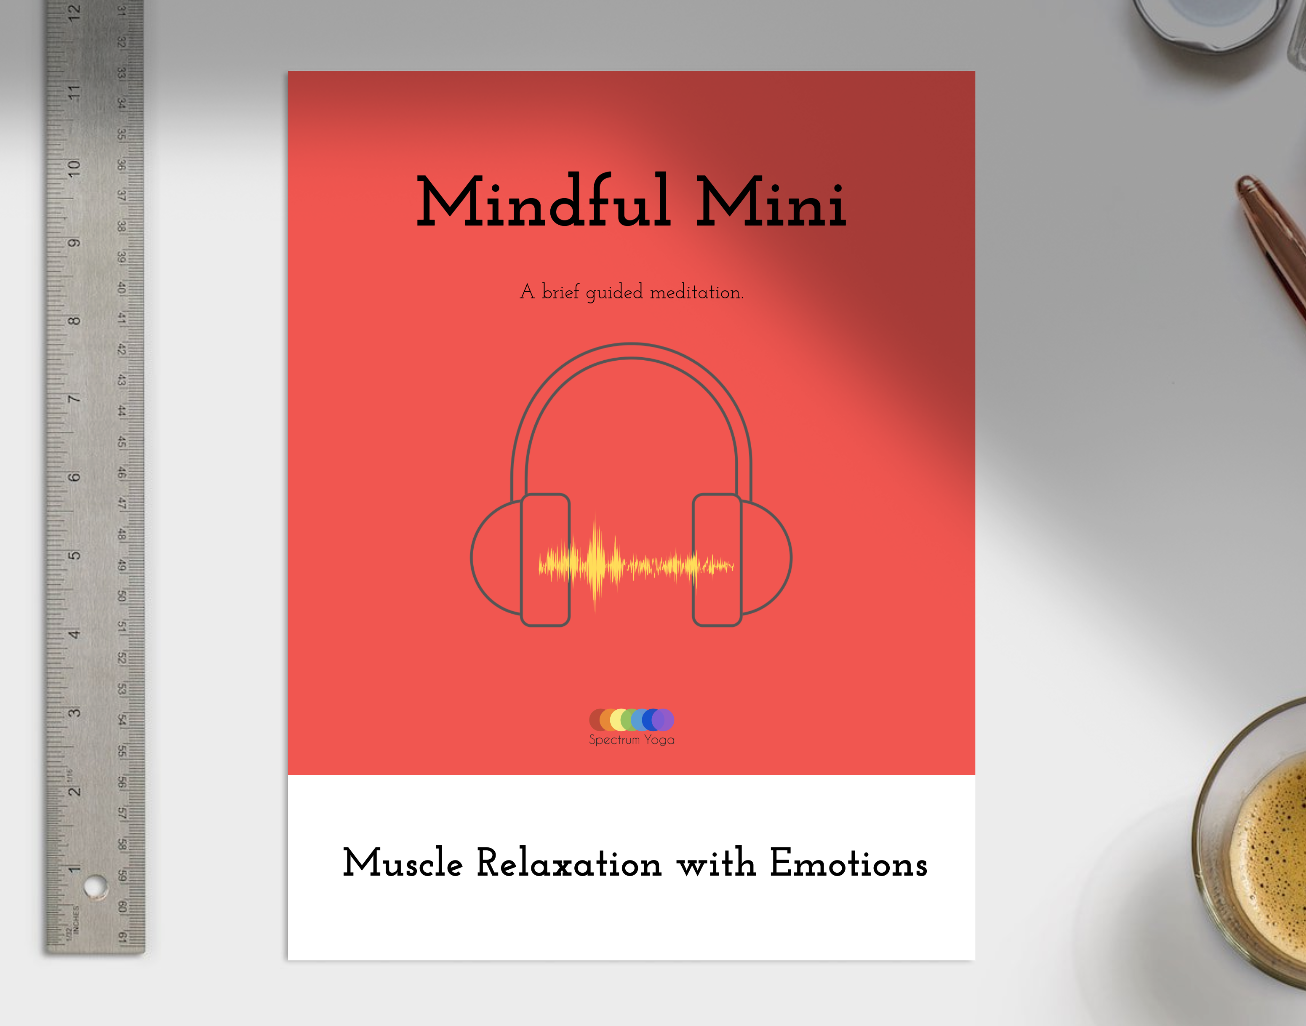 Muscle Relaxation - A three minute guided meditation for body awareness, mind-body relaxation, and practice in observing physical emotional expression - MP3 and PDF script included!